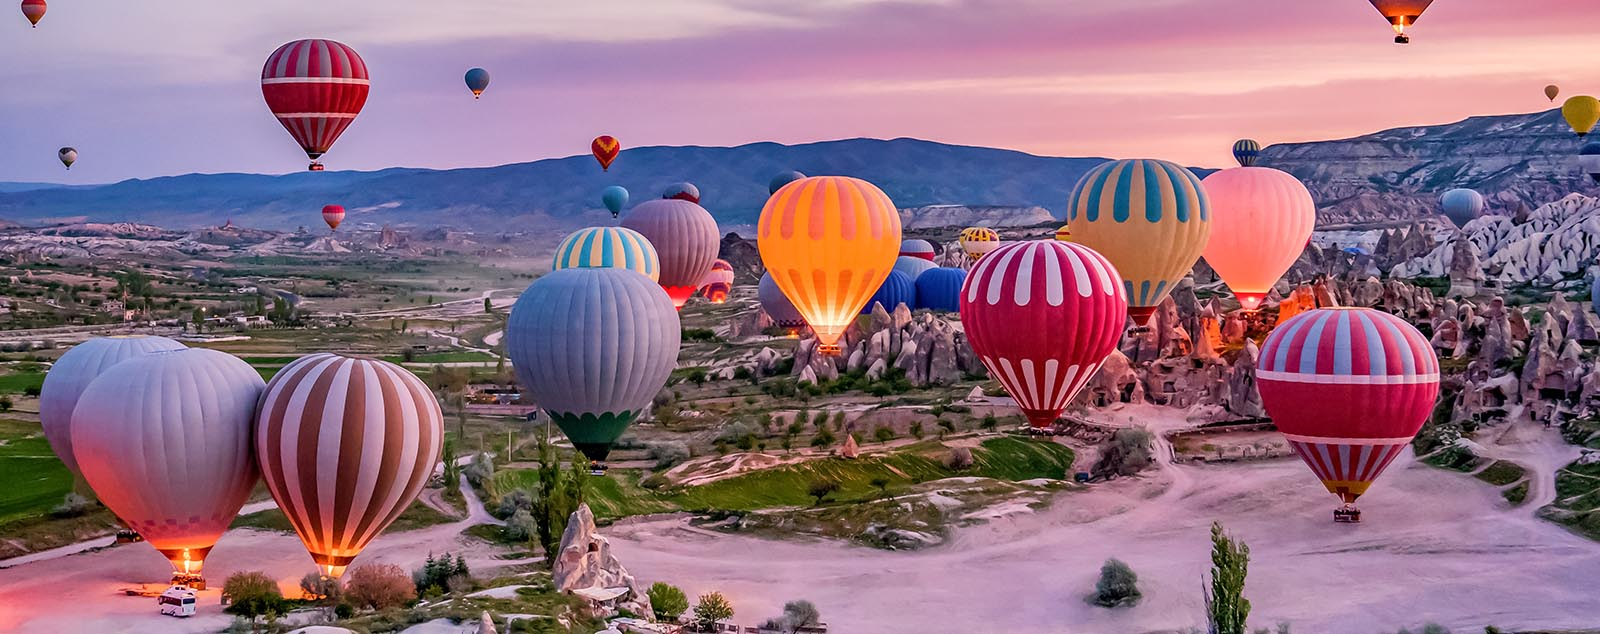 Colourful hot air balloons before launch at sunrise in Goreme national park, Cappadocia, Turkey